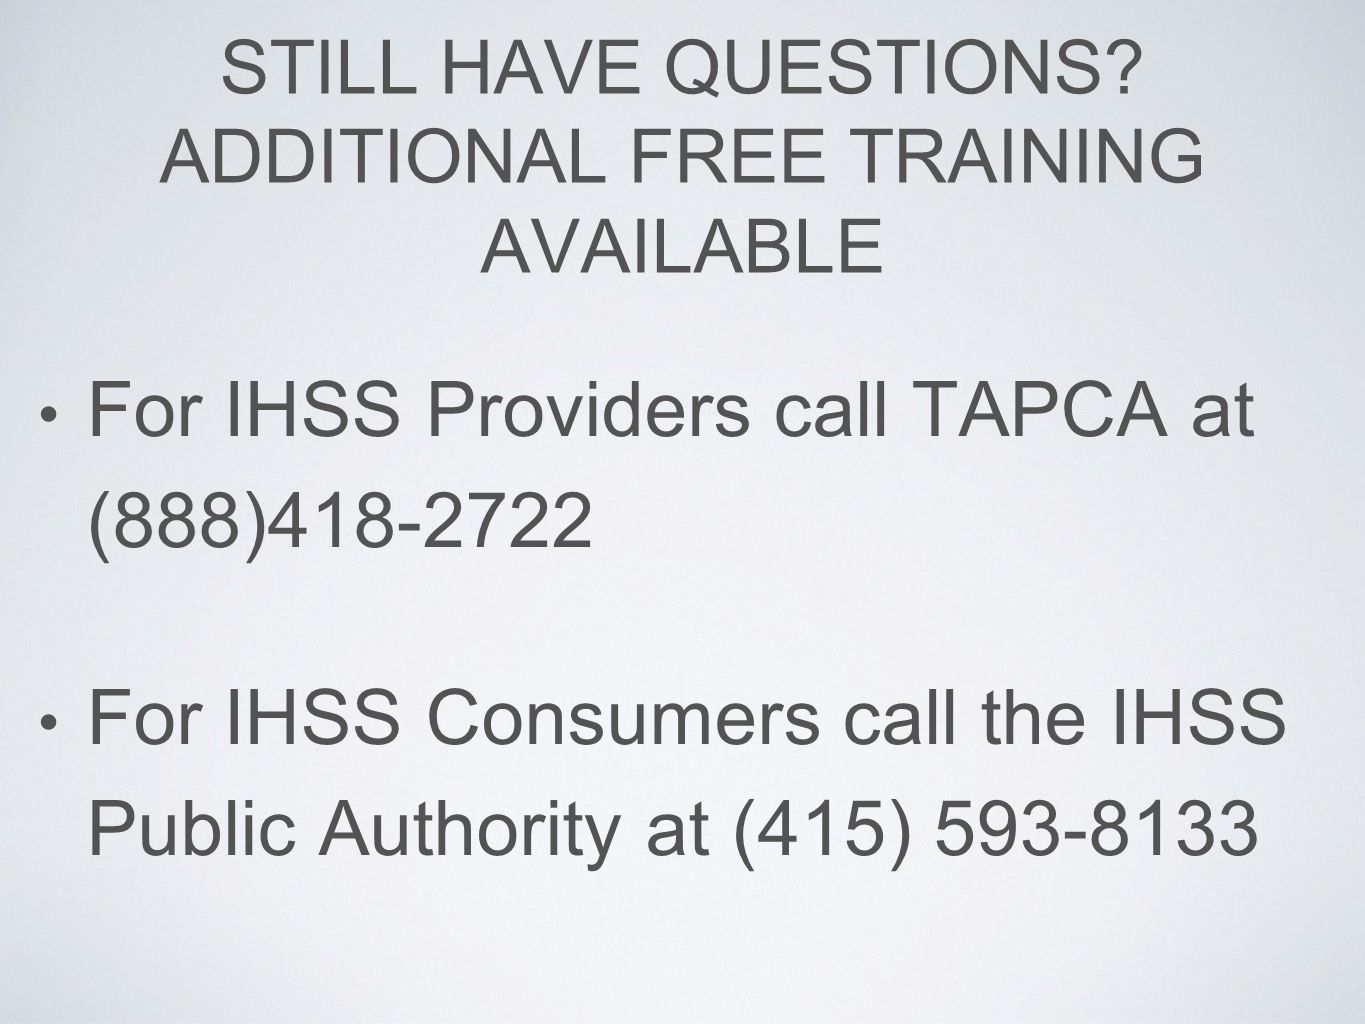 STILL HAVE QUESTIONS ADDITIONAL FREE TRAINING AVAILABLE